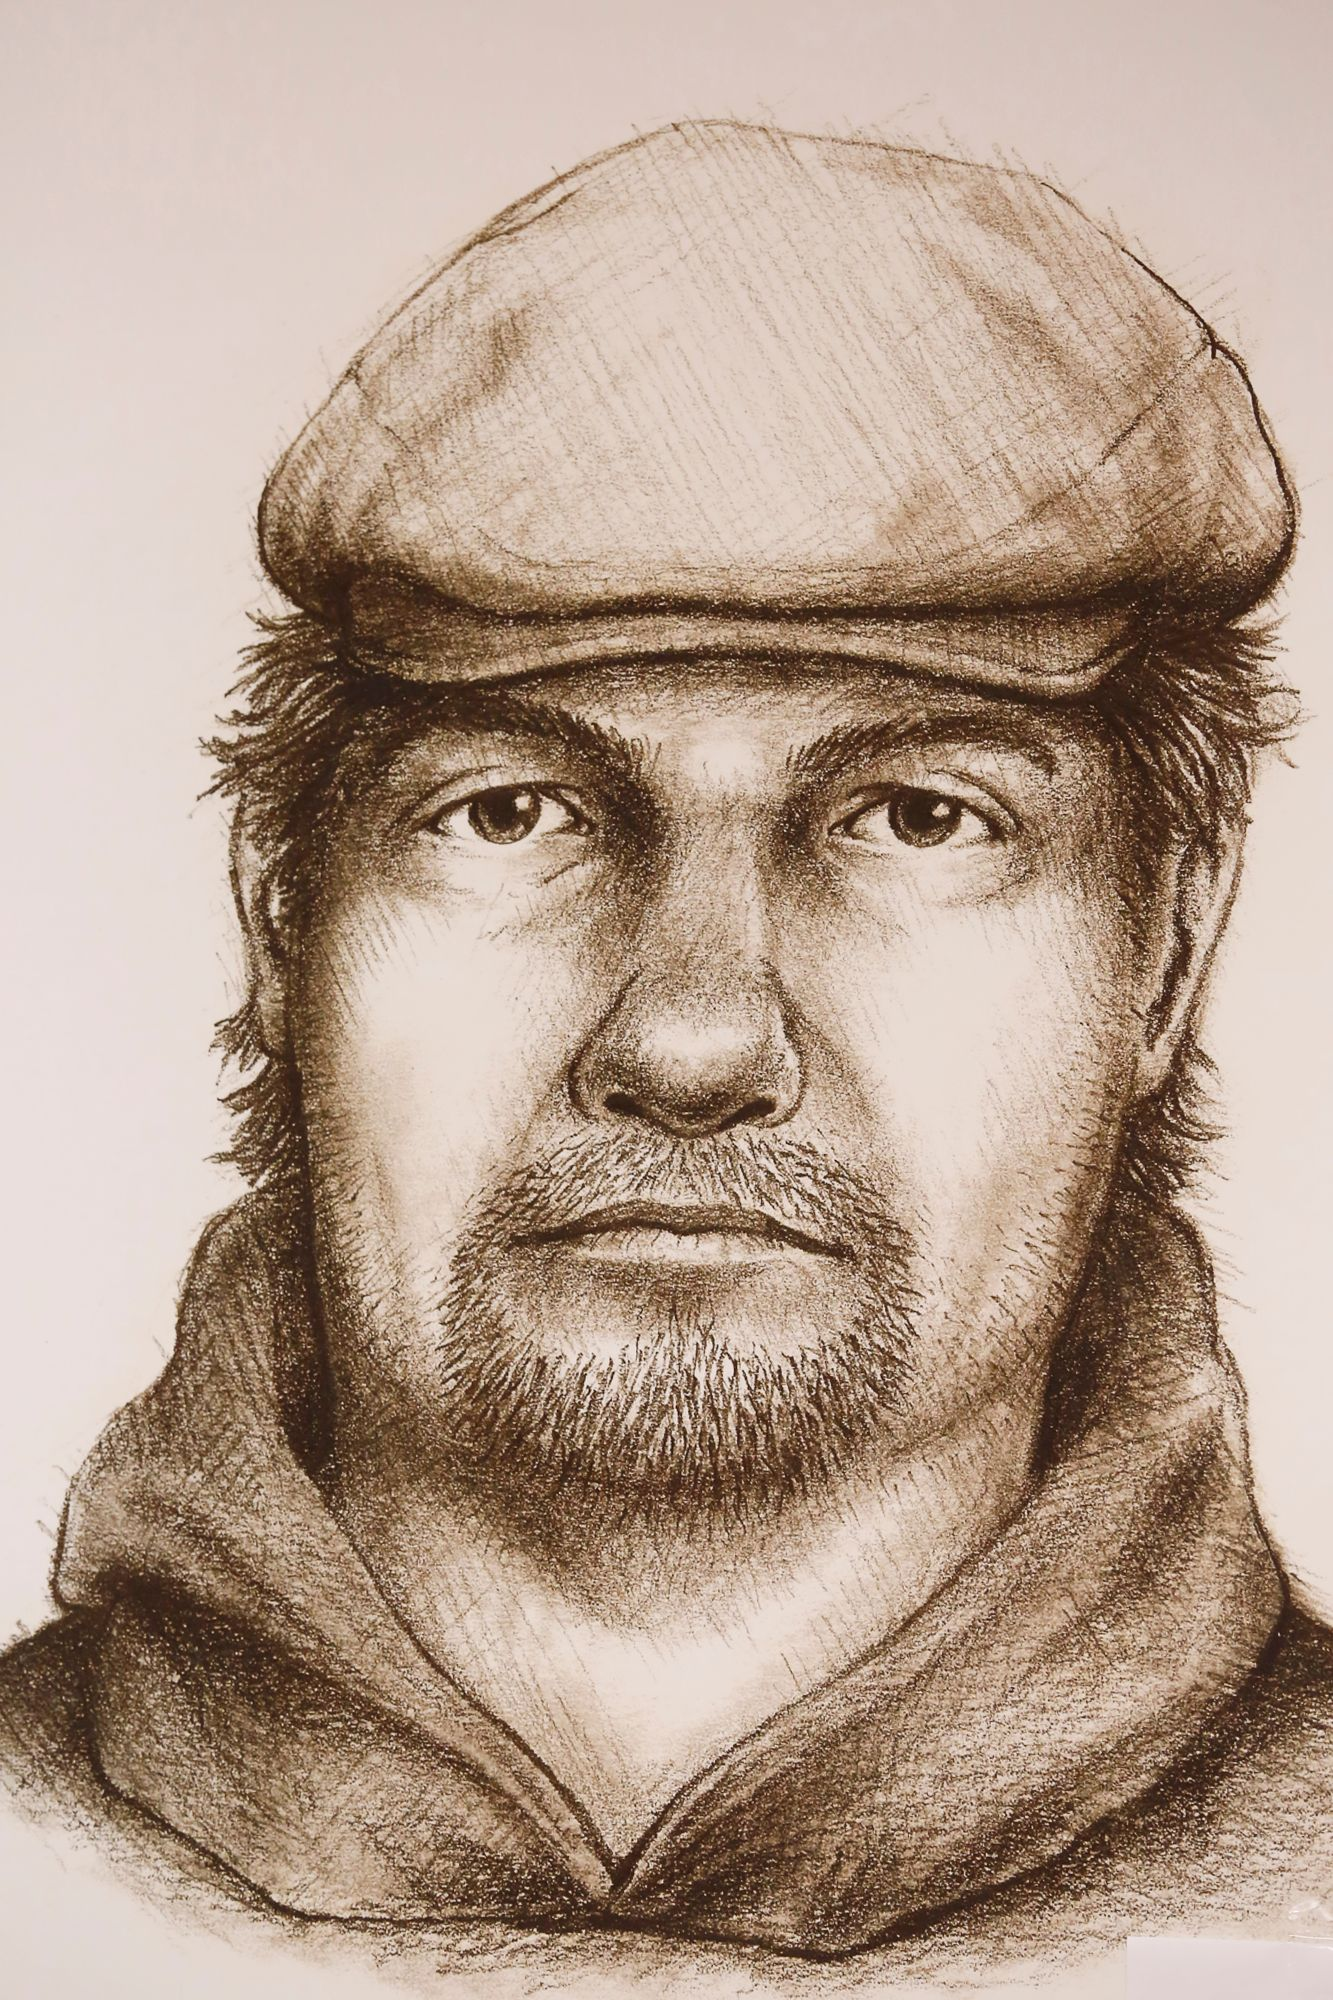 Police unveil sketch of suspect in Indiana teens' slayings